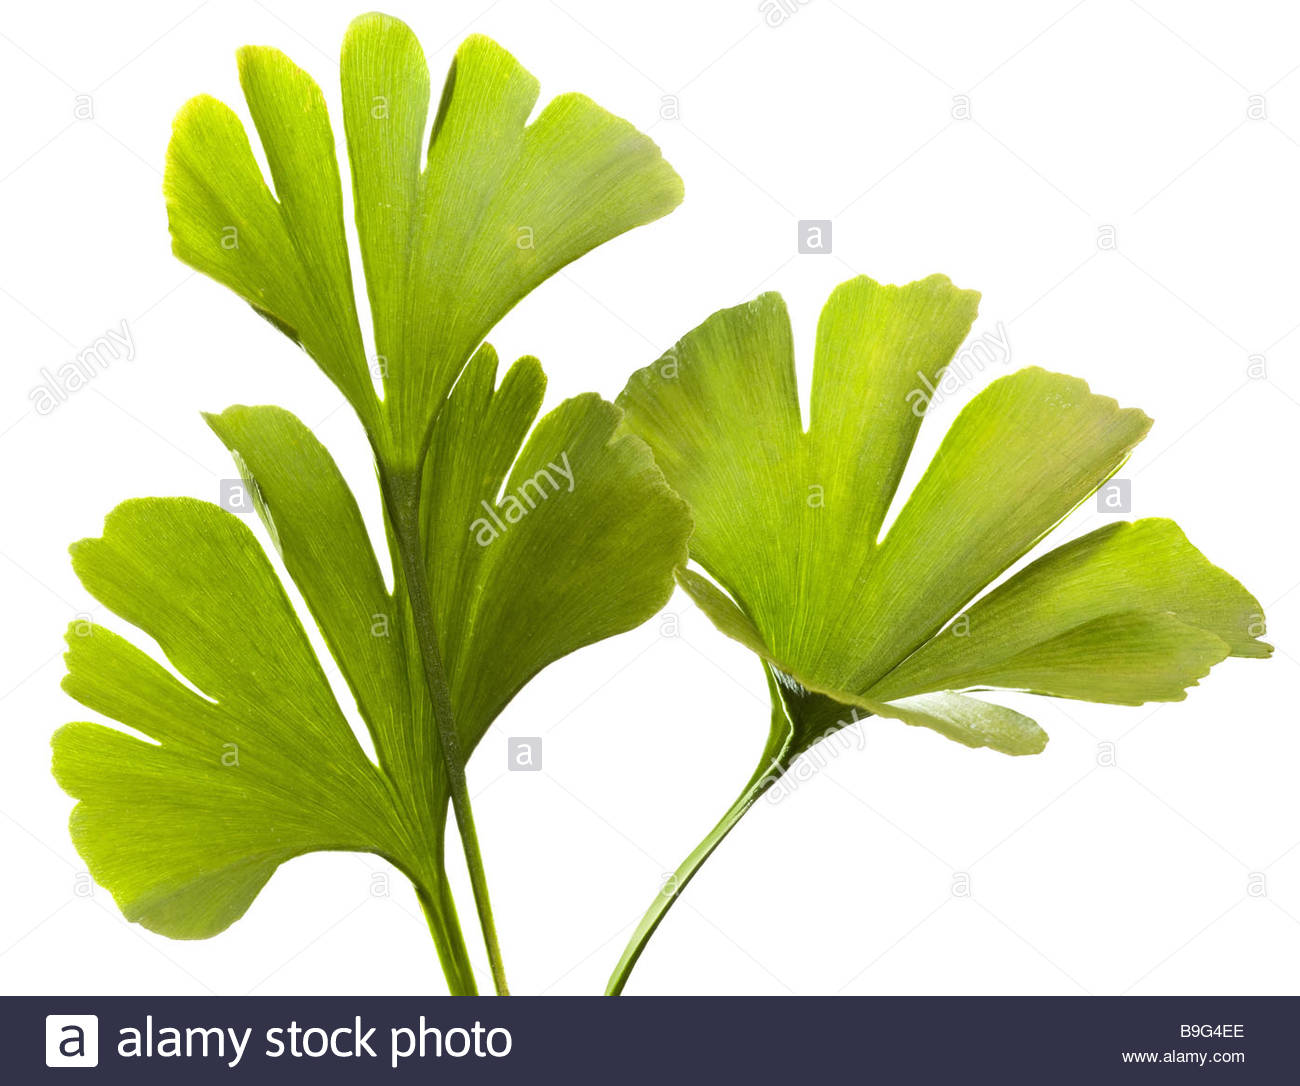 Green Leaves Fan Out Stock Photos & Green Leaves Fan Out Stock.